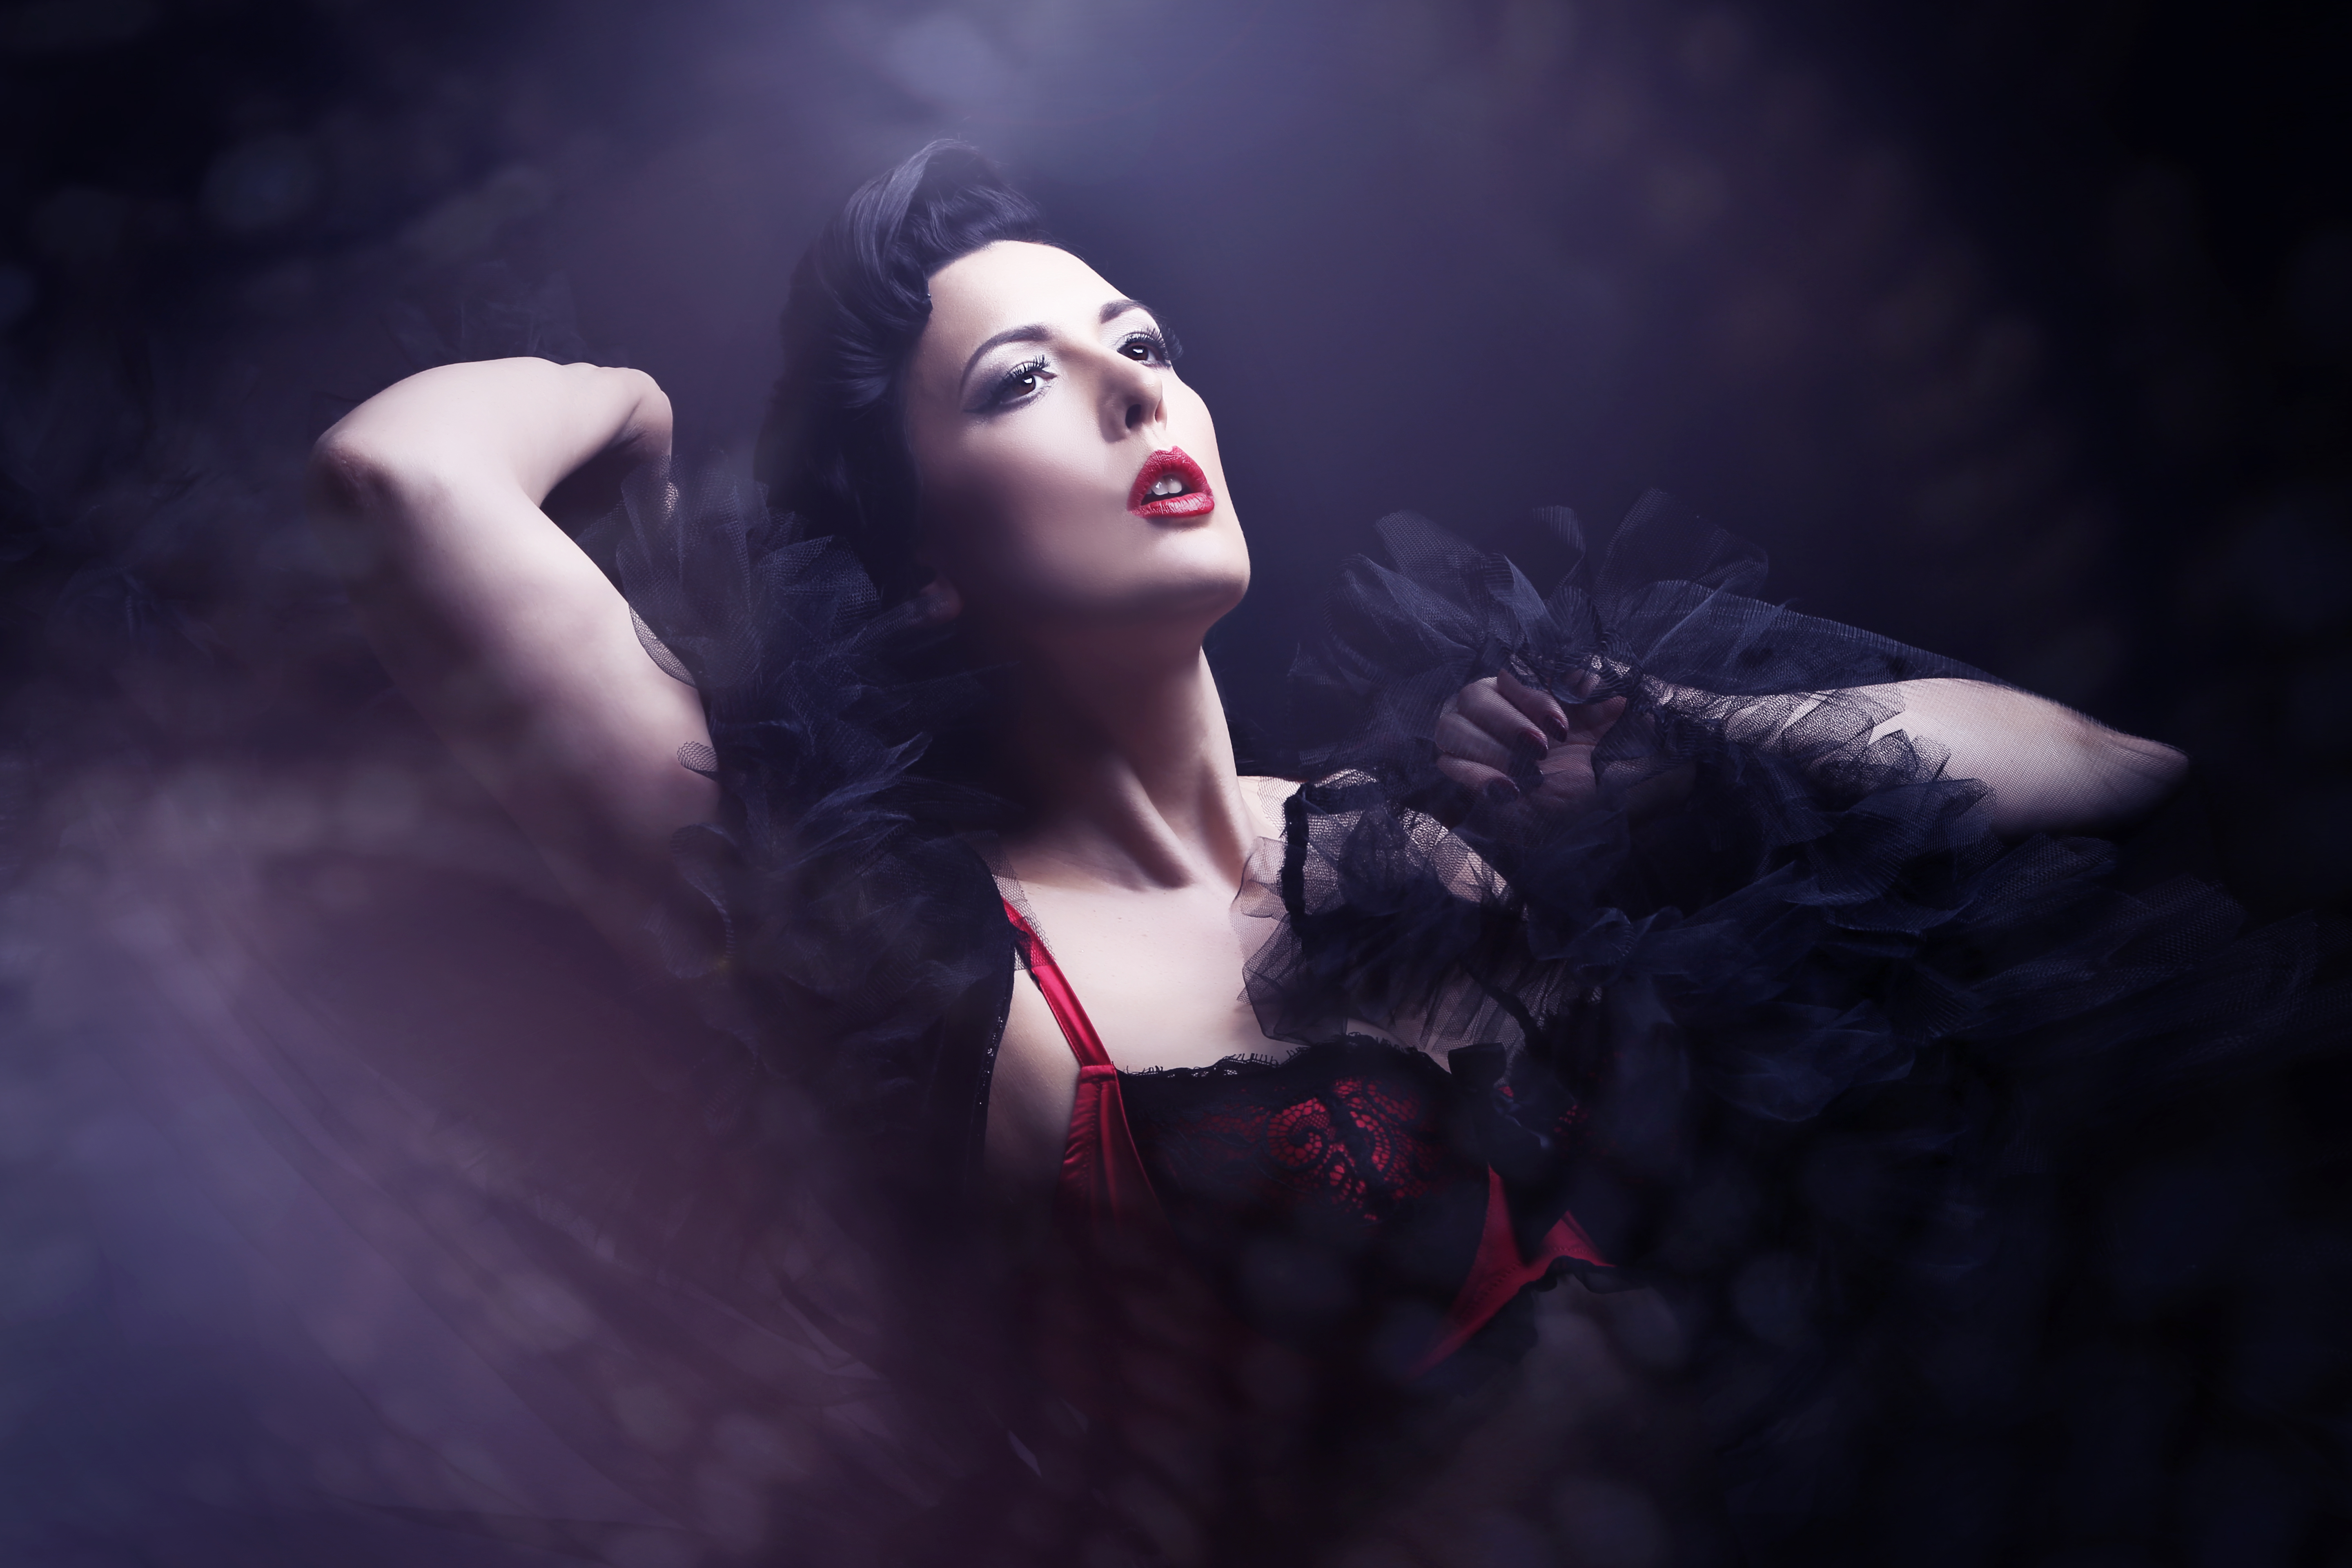 lady-may-den-voyage-dollhouse-photography3